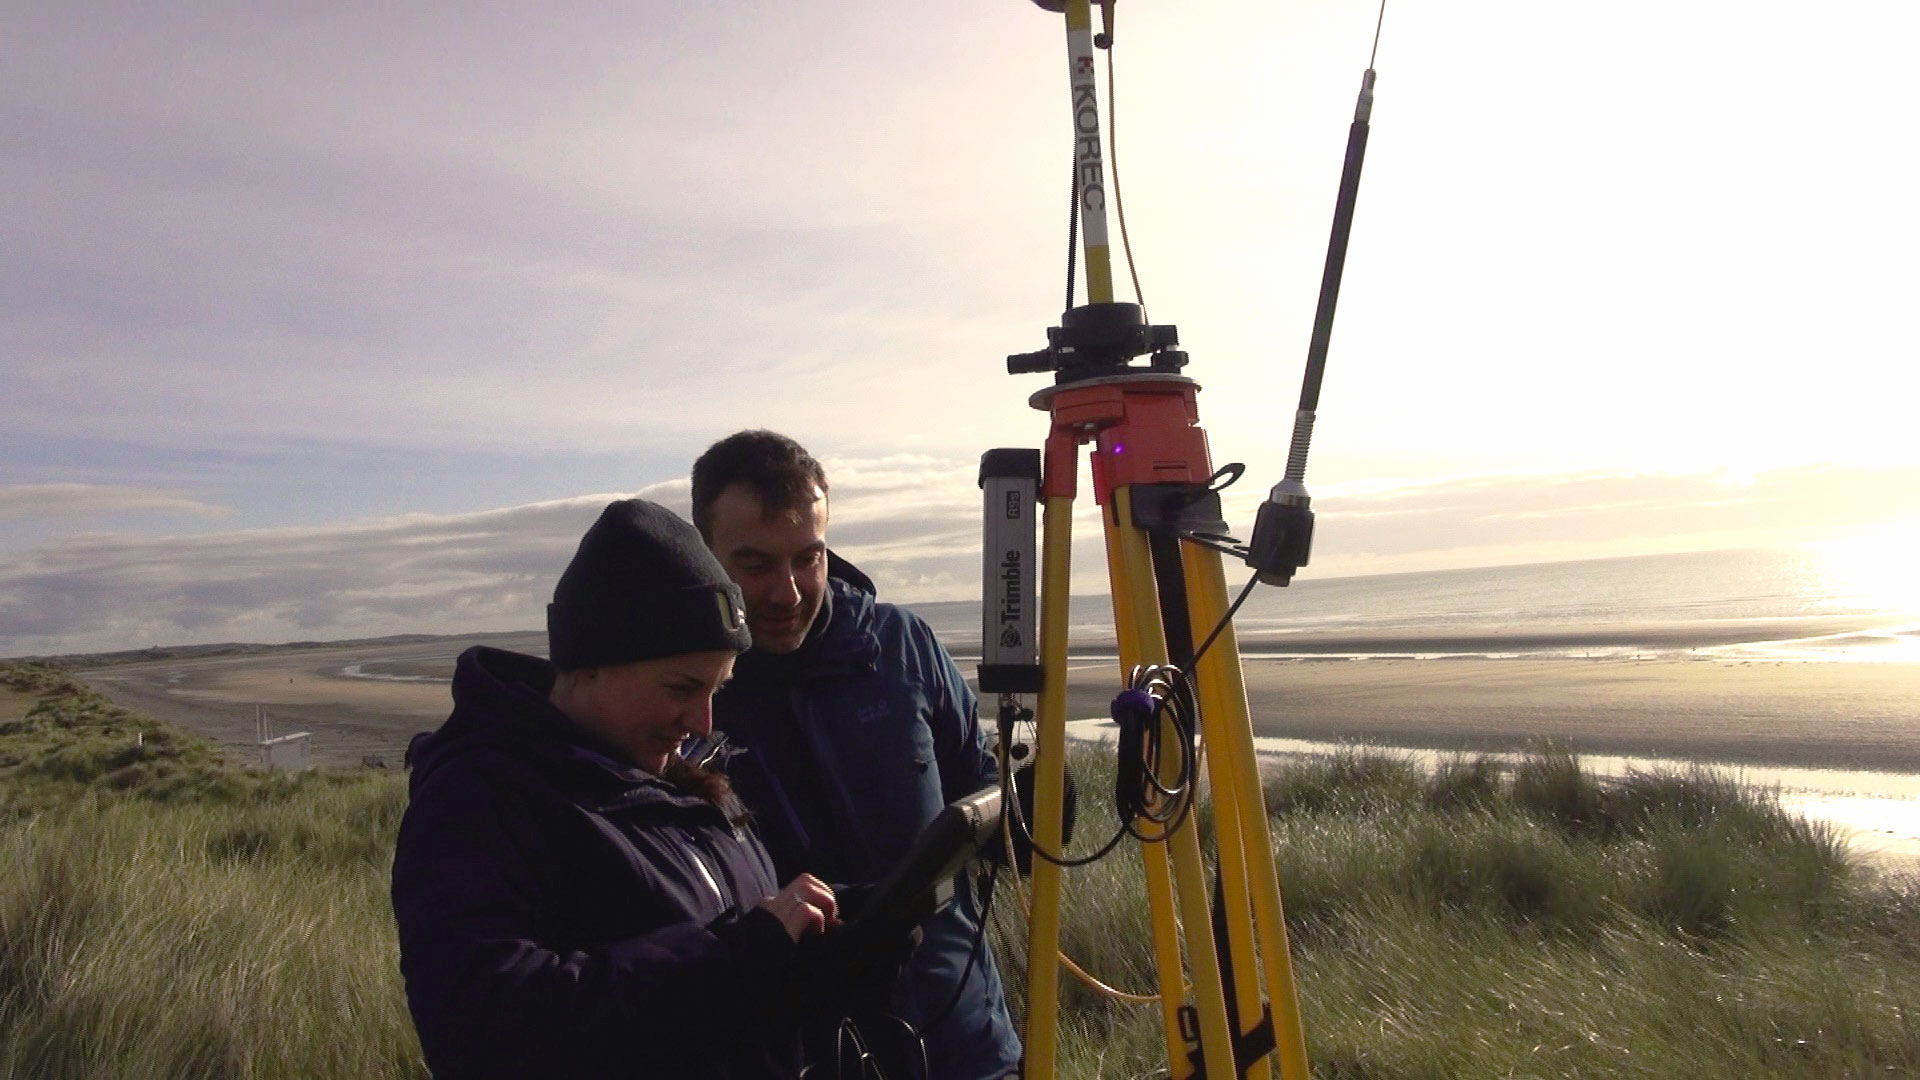 Drs Melanie Biausque and Edoardo Grottoli from Ulster University setting up a GPS base station.